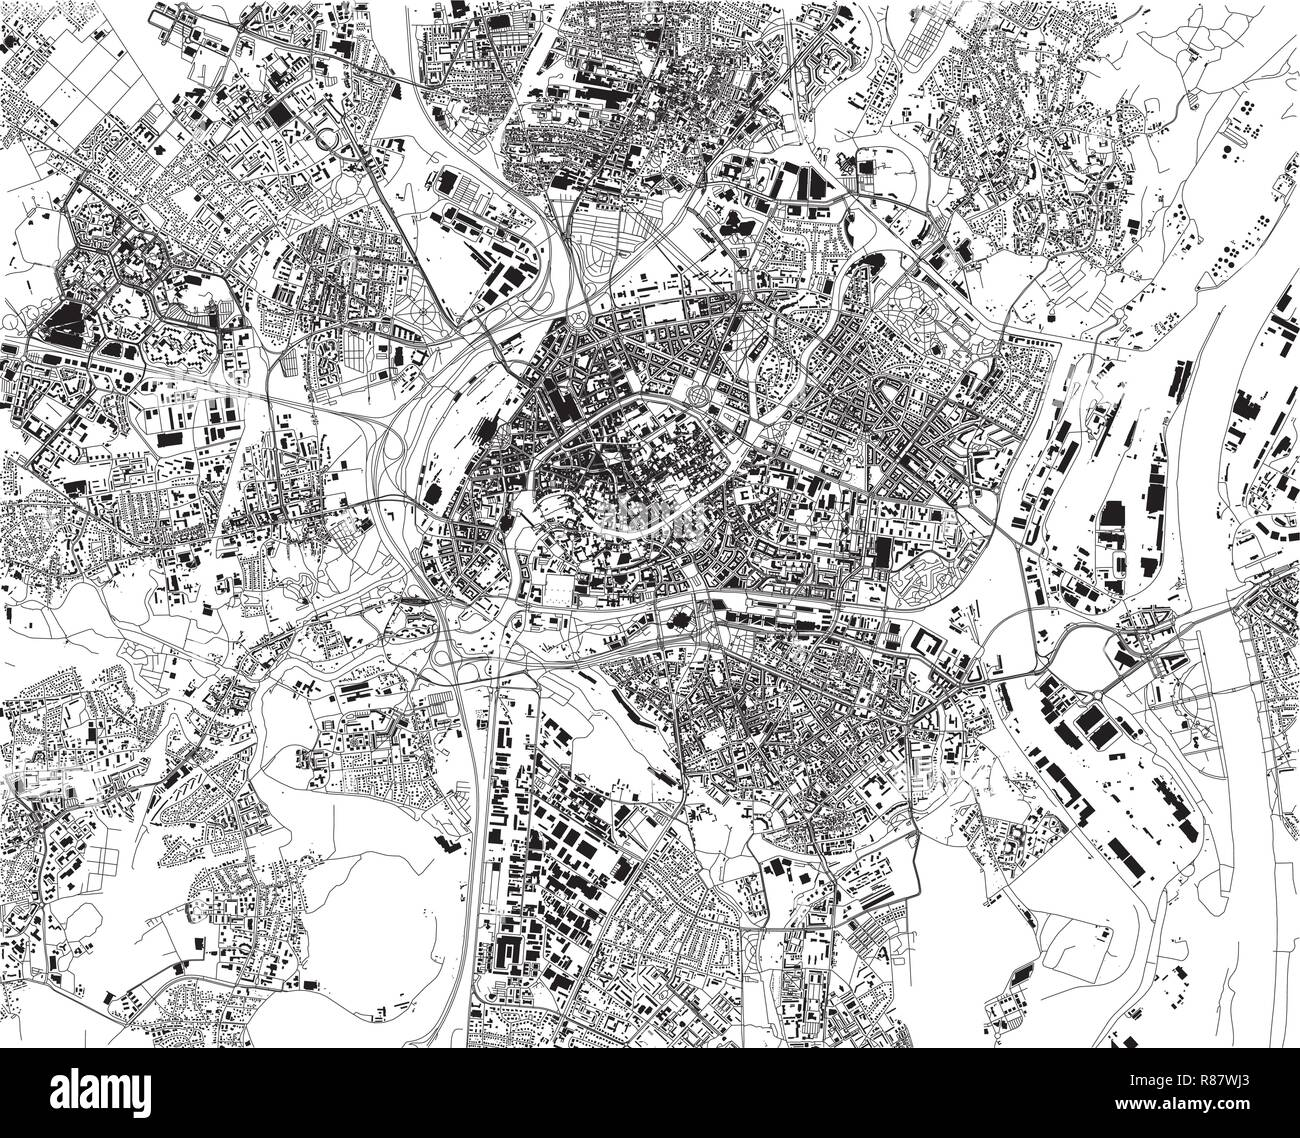 Map Strasbourg Stock Vector Images - Alamy